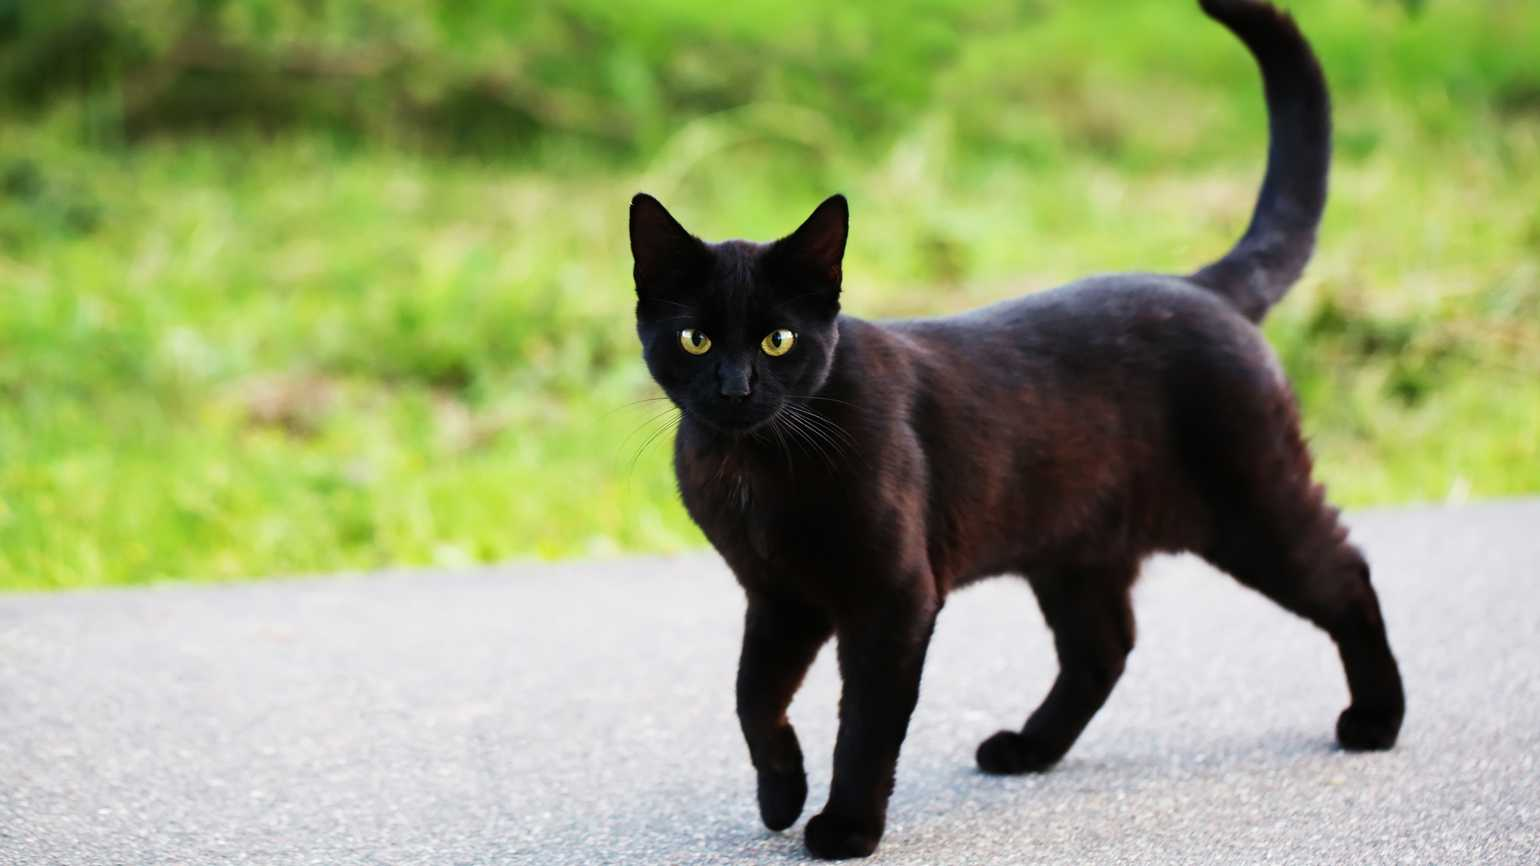 A black cat strolling outside.